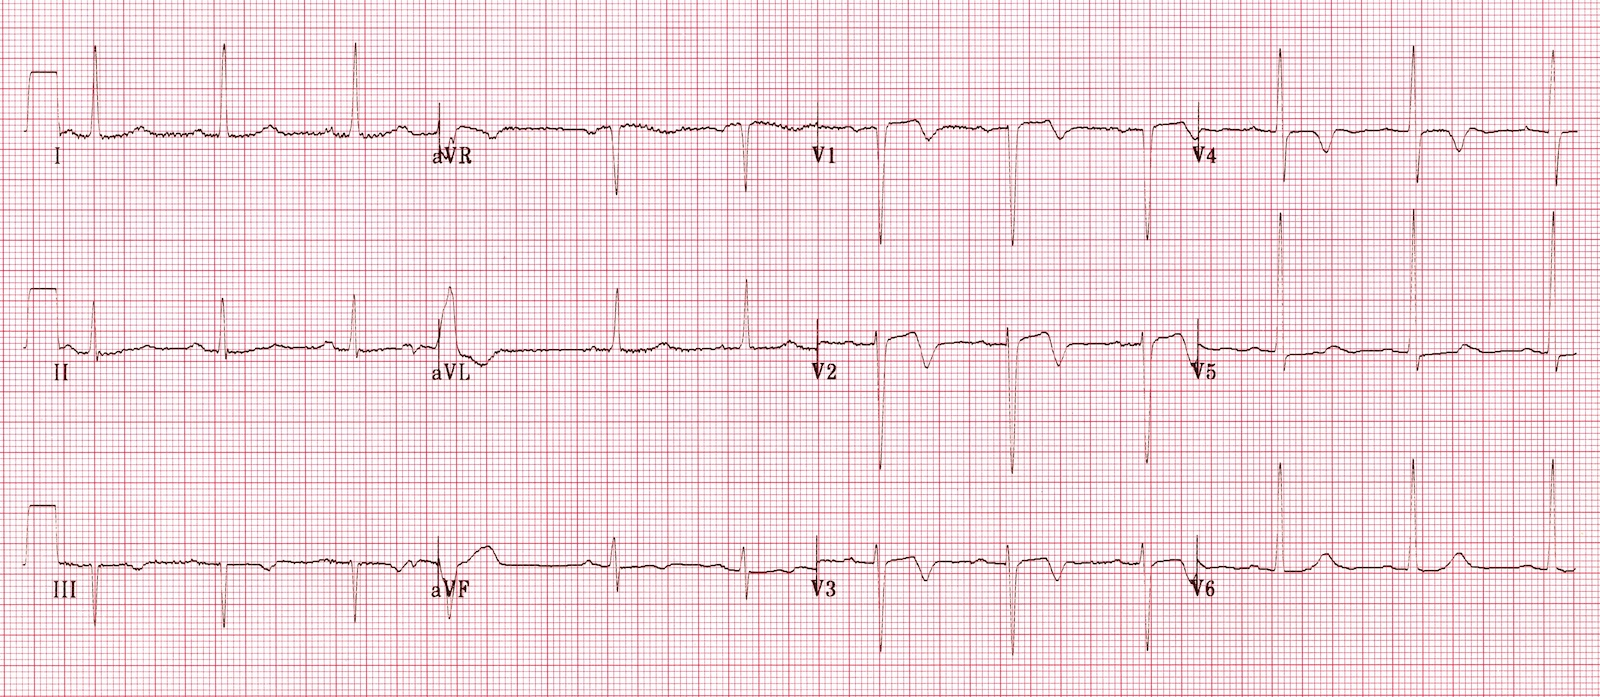 Wellens' Syndrome Type B